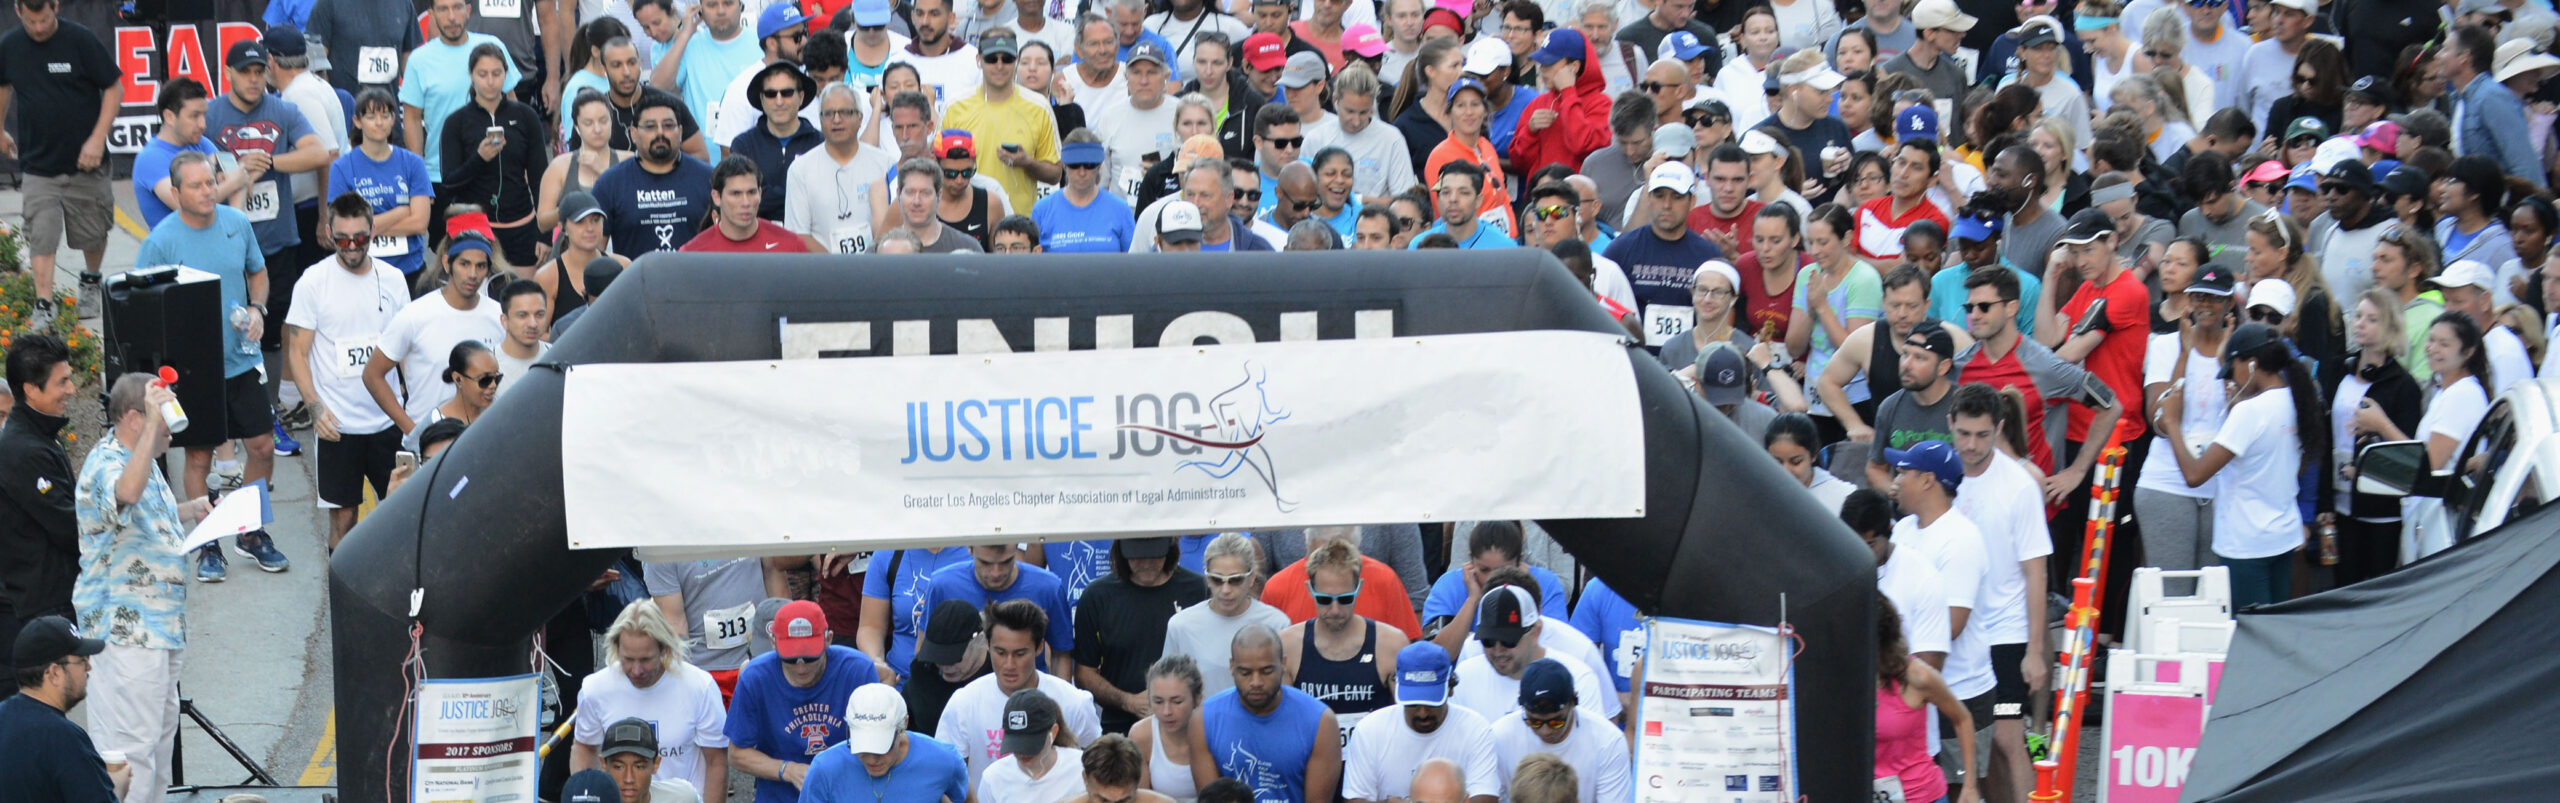 Justice Jog 5K and 10K Run/Walk